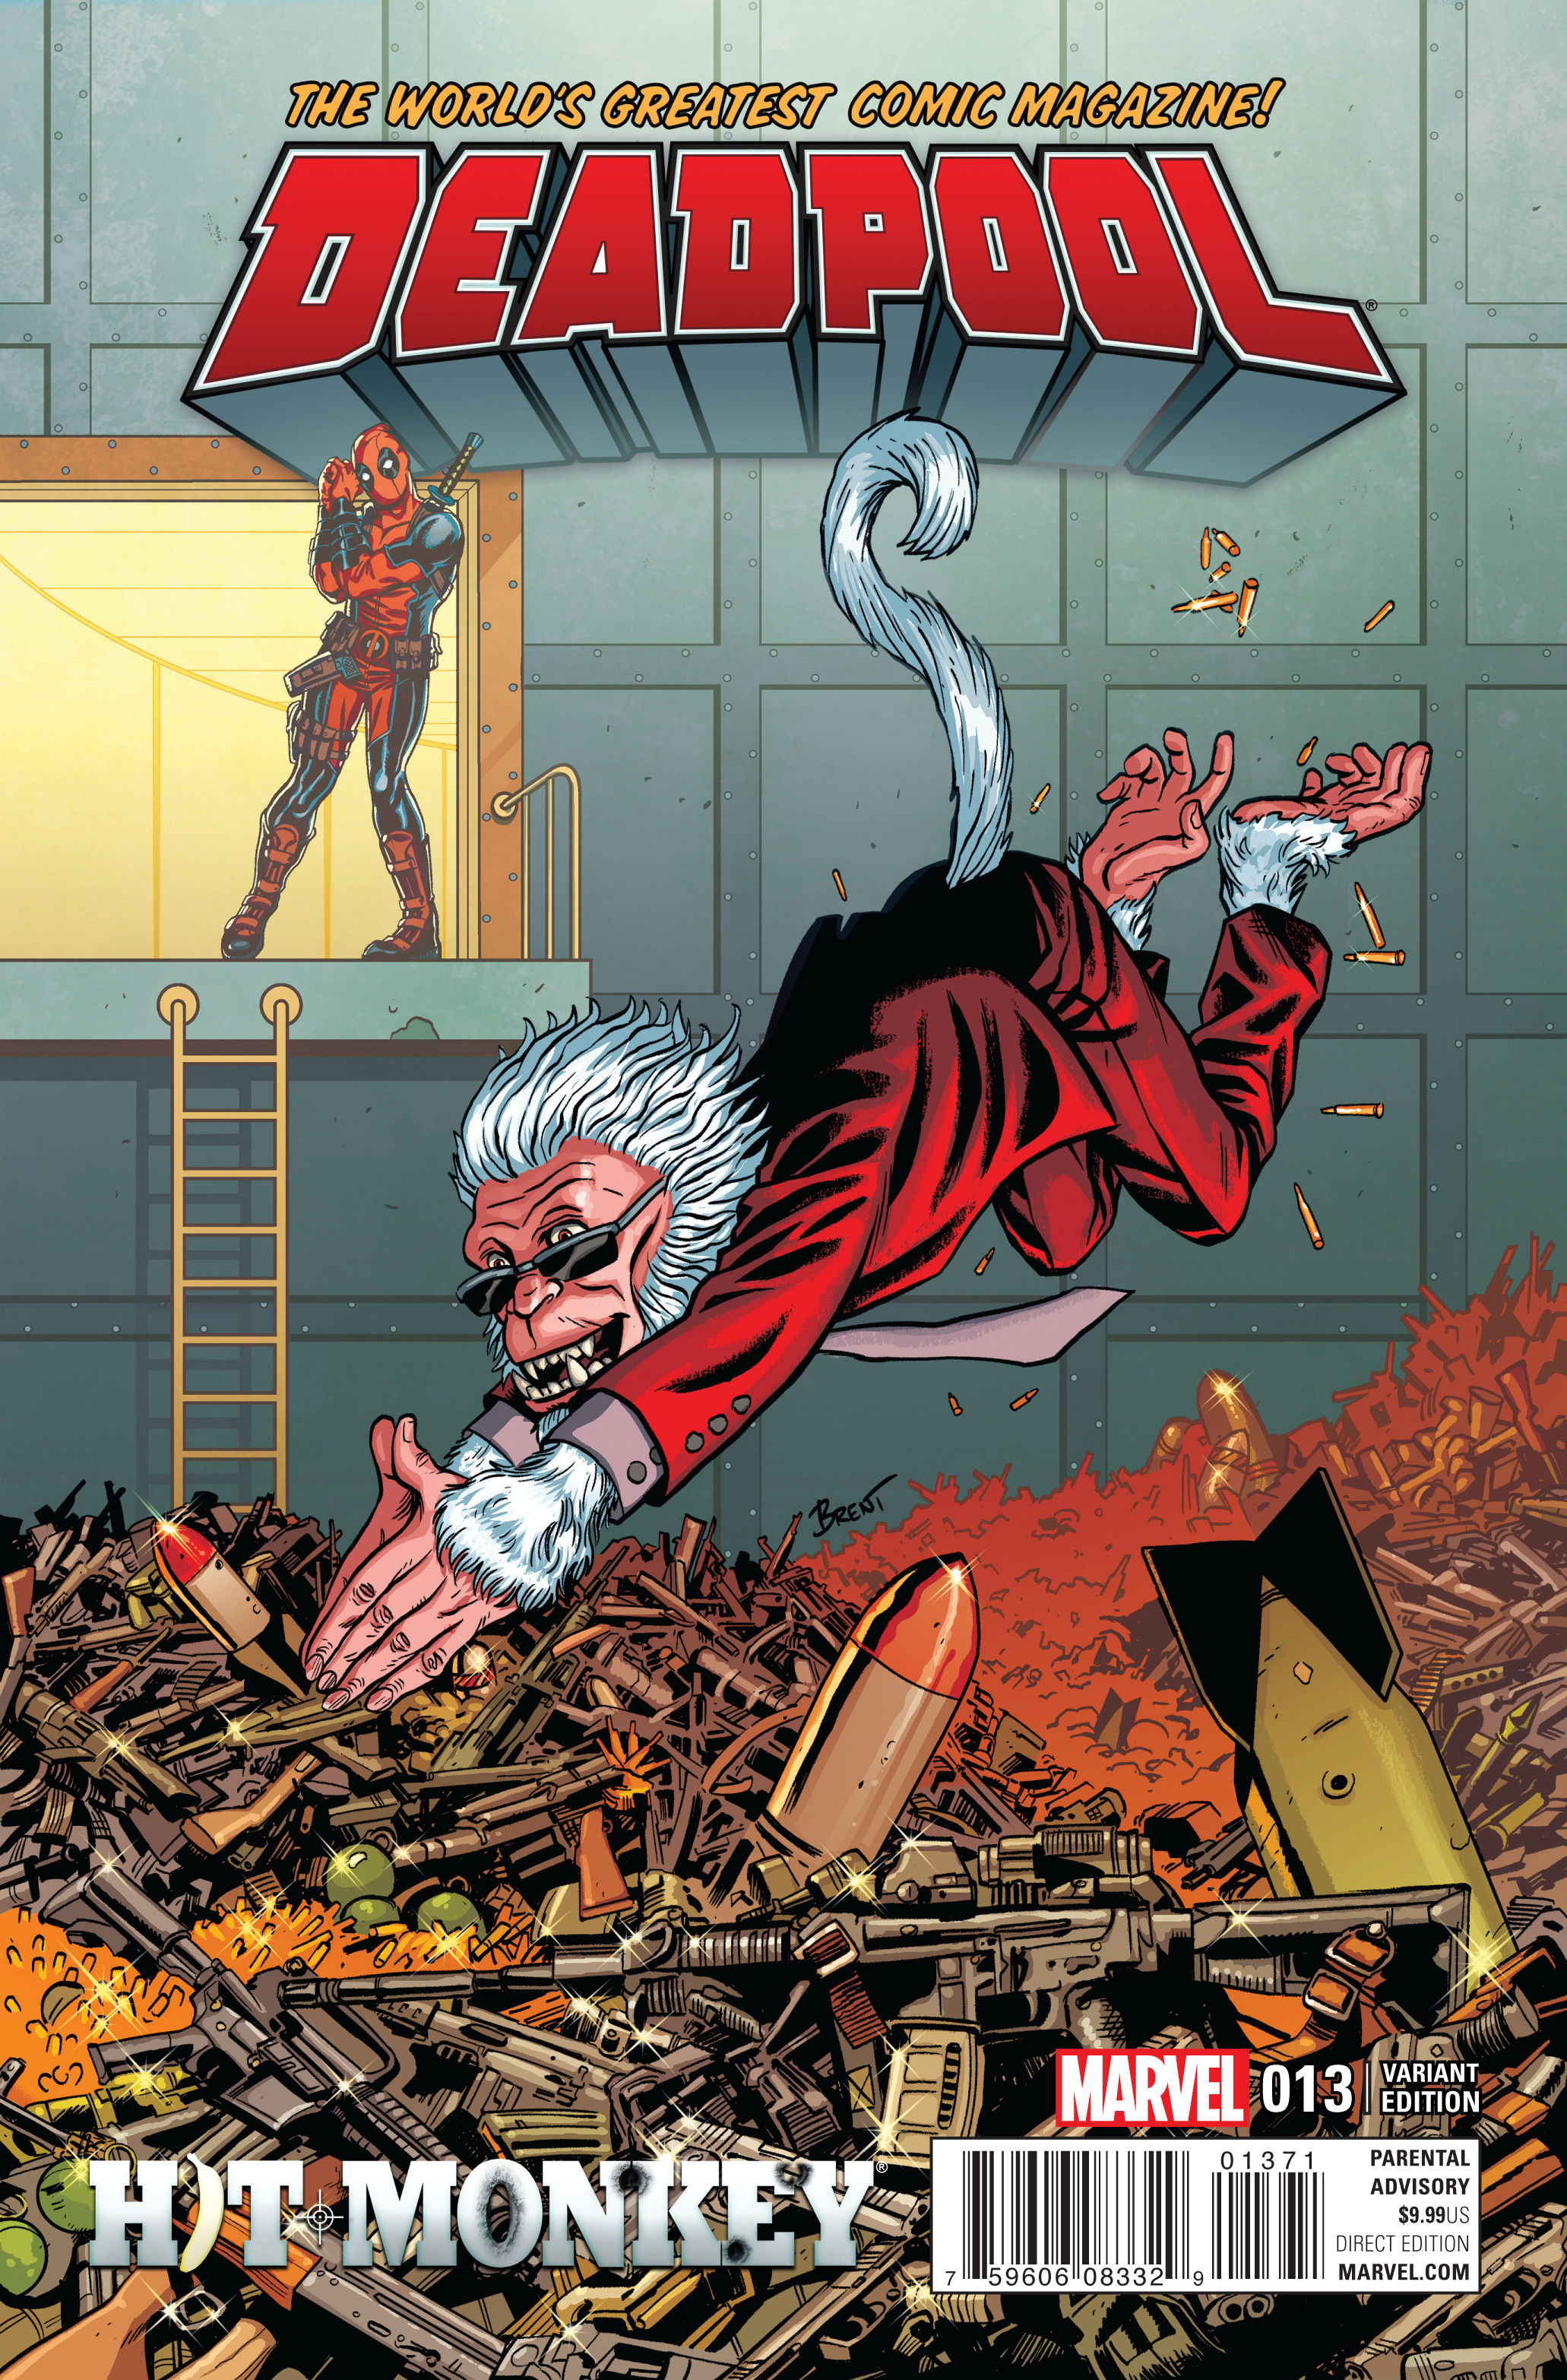 DEADPOOL #13 ADD HIT MONKEY VAR